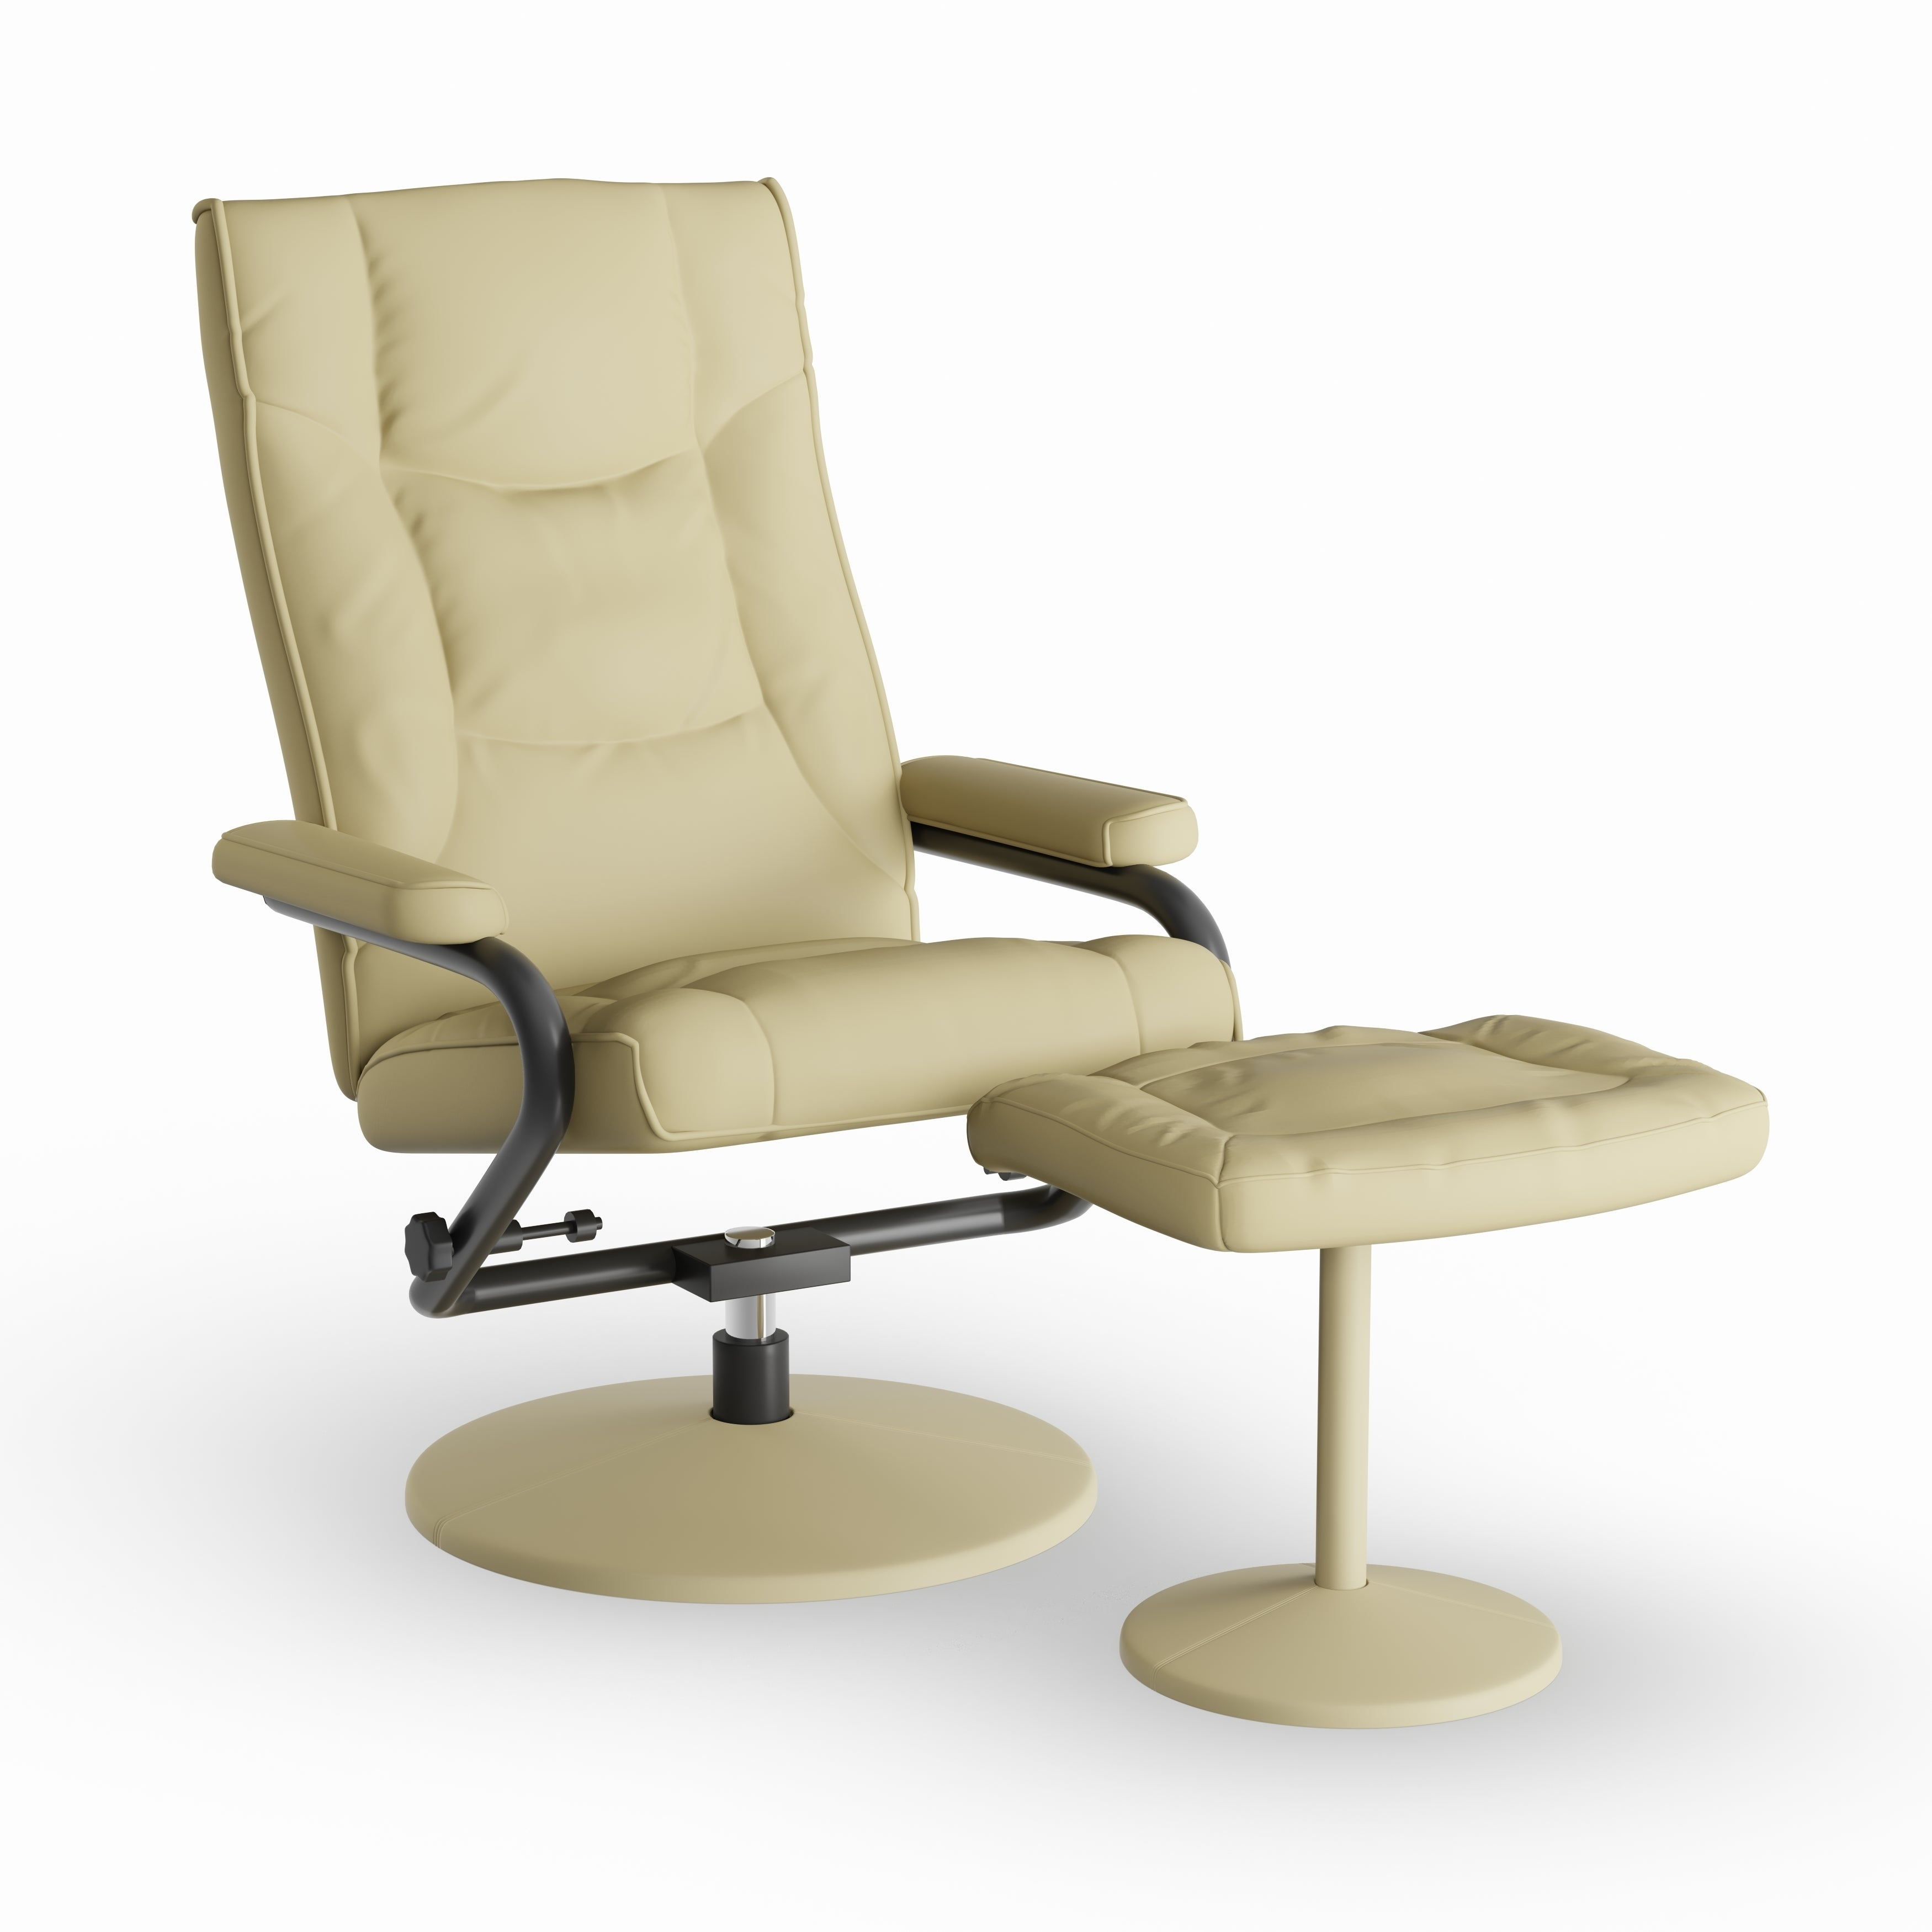 Astounding Details About Strick Bolton Luc Contemporary Leather Recliner And Ottoman Gamerscity Chair Design For Home Gamerscityorg